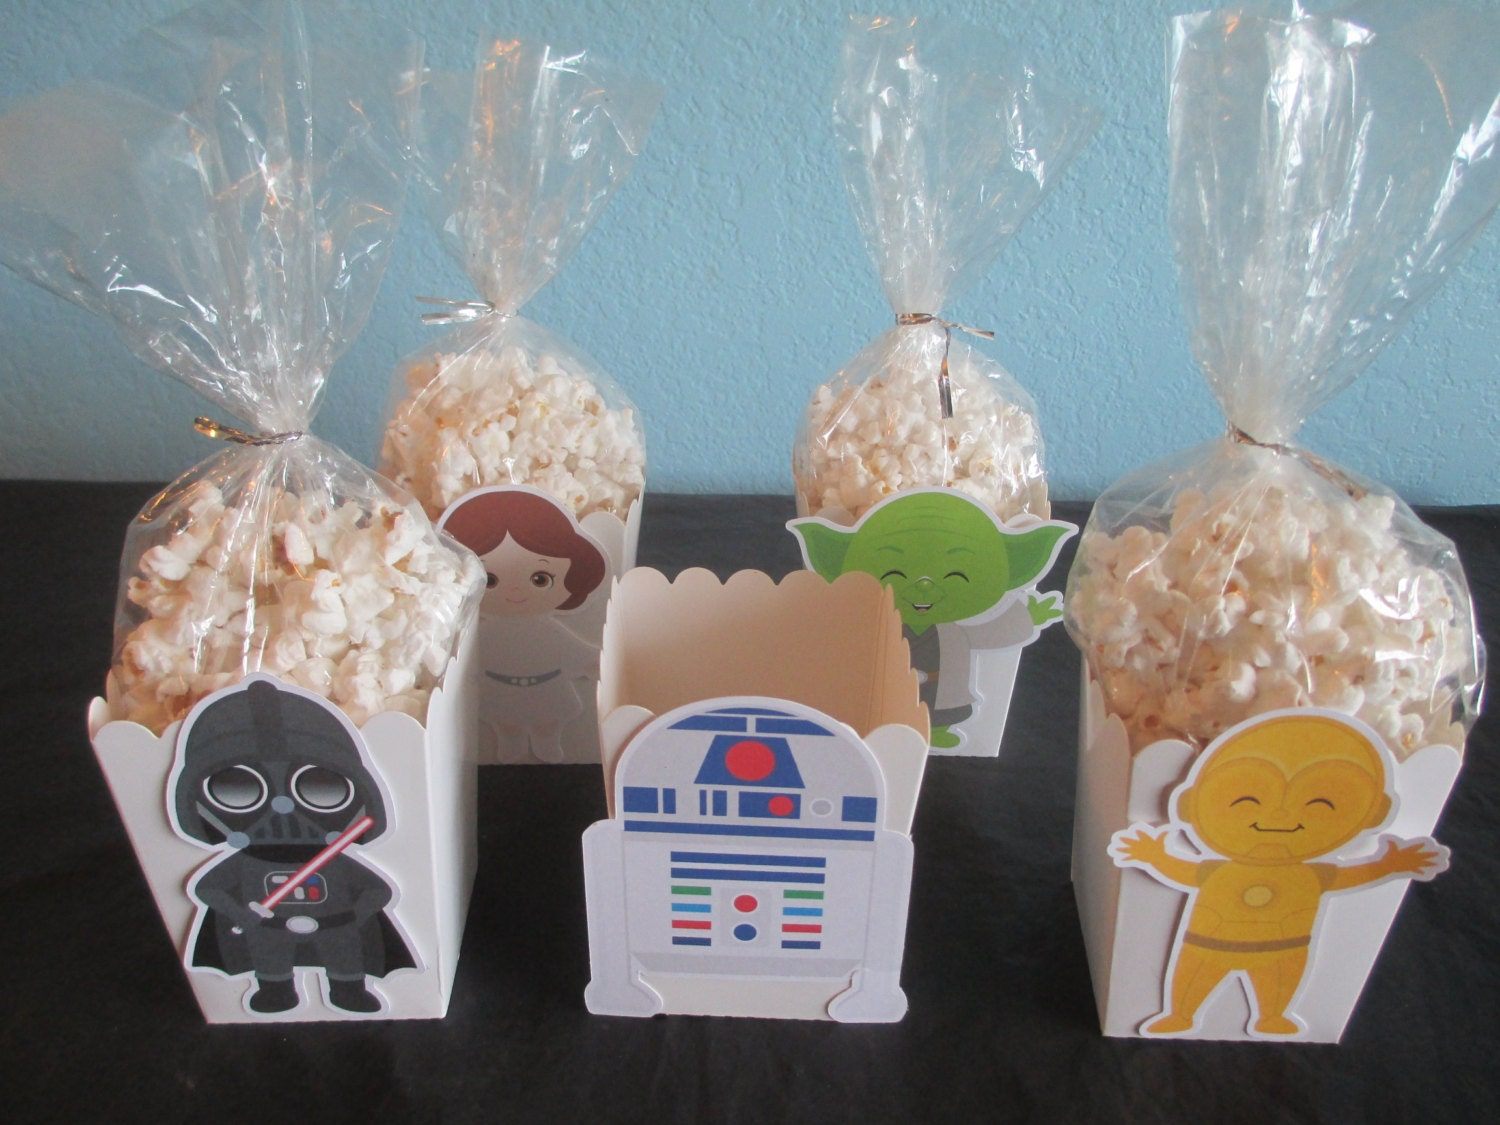 star wars popcorn boxes20star wars favor boxesstar wars decoration - Star Wars Decorations